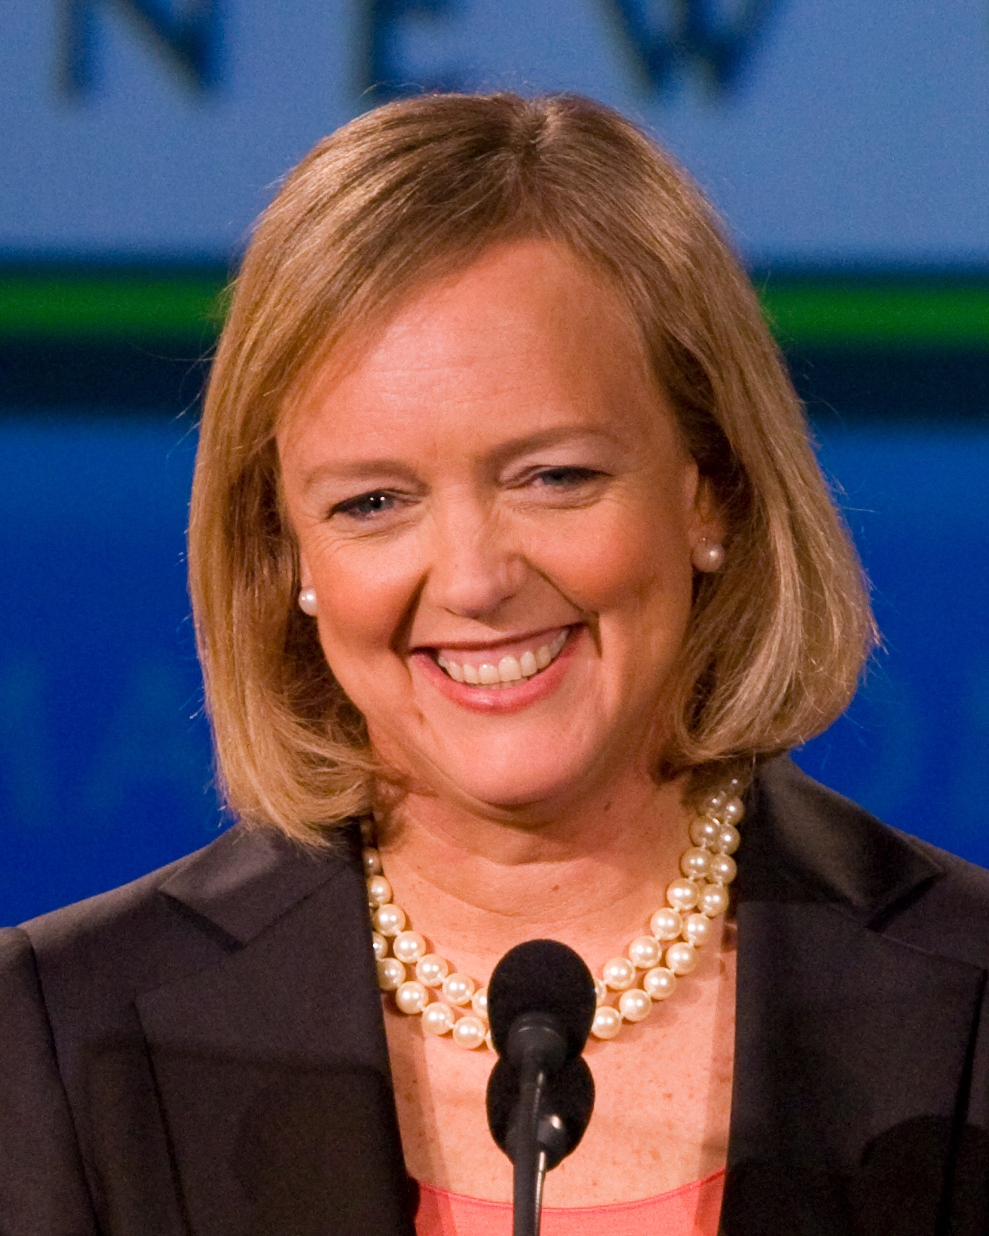 Meg Whitman - Former CEO of Hewlett Packard